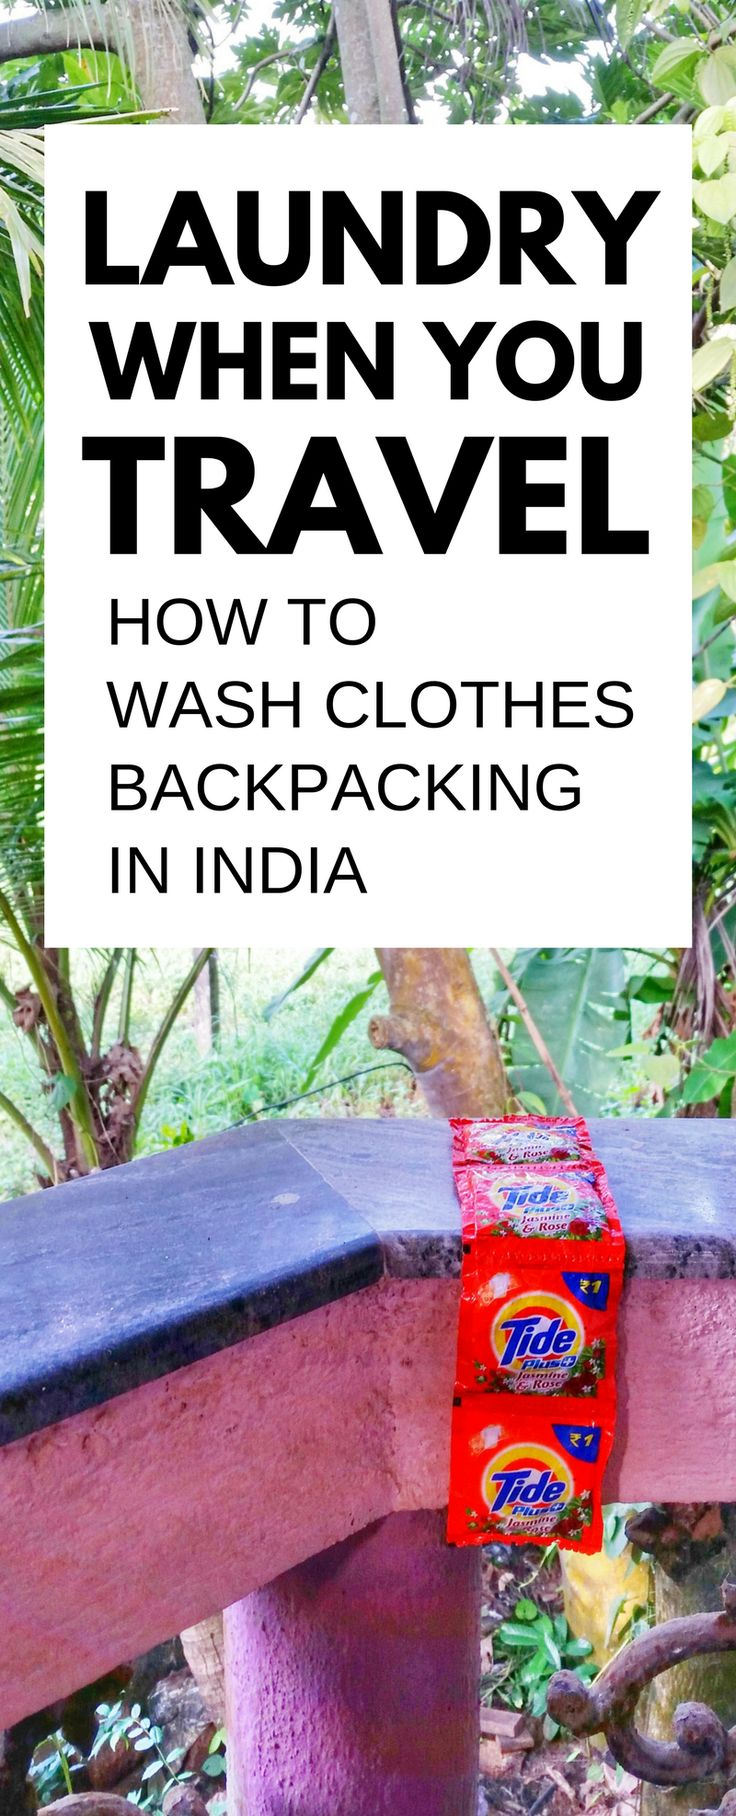 For travel in India for weeks backpacking Asia, you need to wash clothes and outfits. Here are things to do and tips on how to do laundry while traveling cheap. Best places to do may be guesthouse or budget hotel! What to wear in India so clothes will dry quicker! Ideas of what to pack for India and gear to add to international travel packing list for your world adventures and bucket list destinations! Travel Mumbai, Delhi, Rajasthan, Jaipur, Kerala, North India, South India. #india…